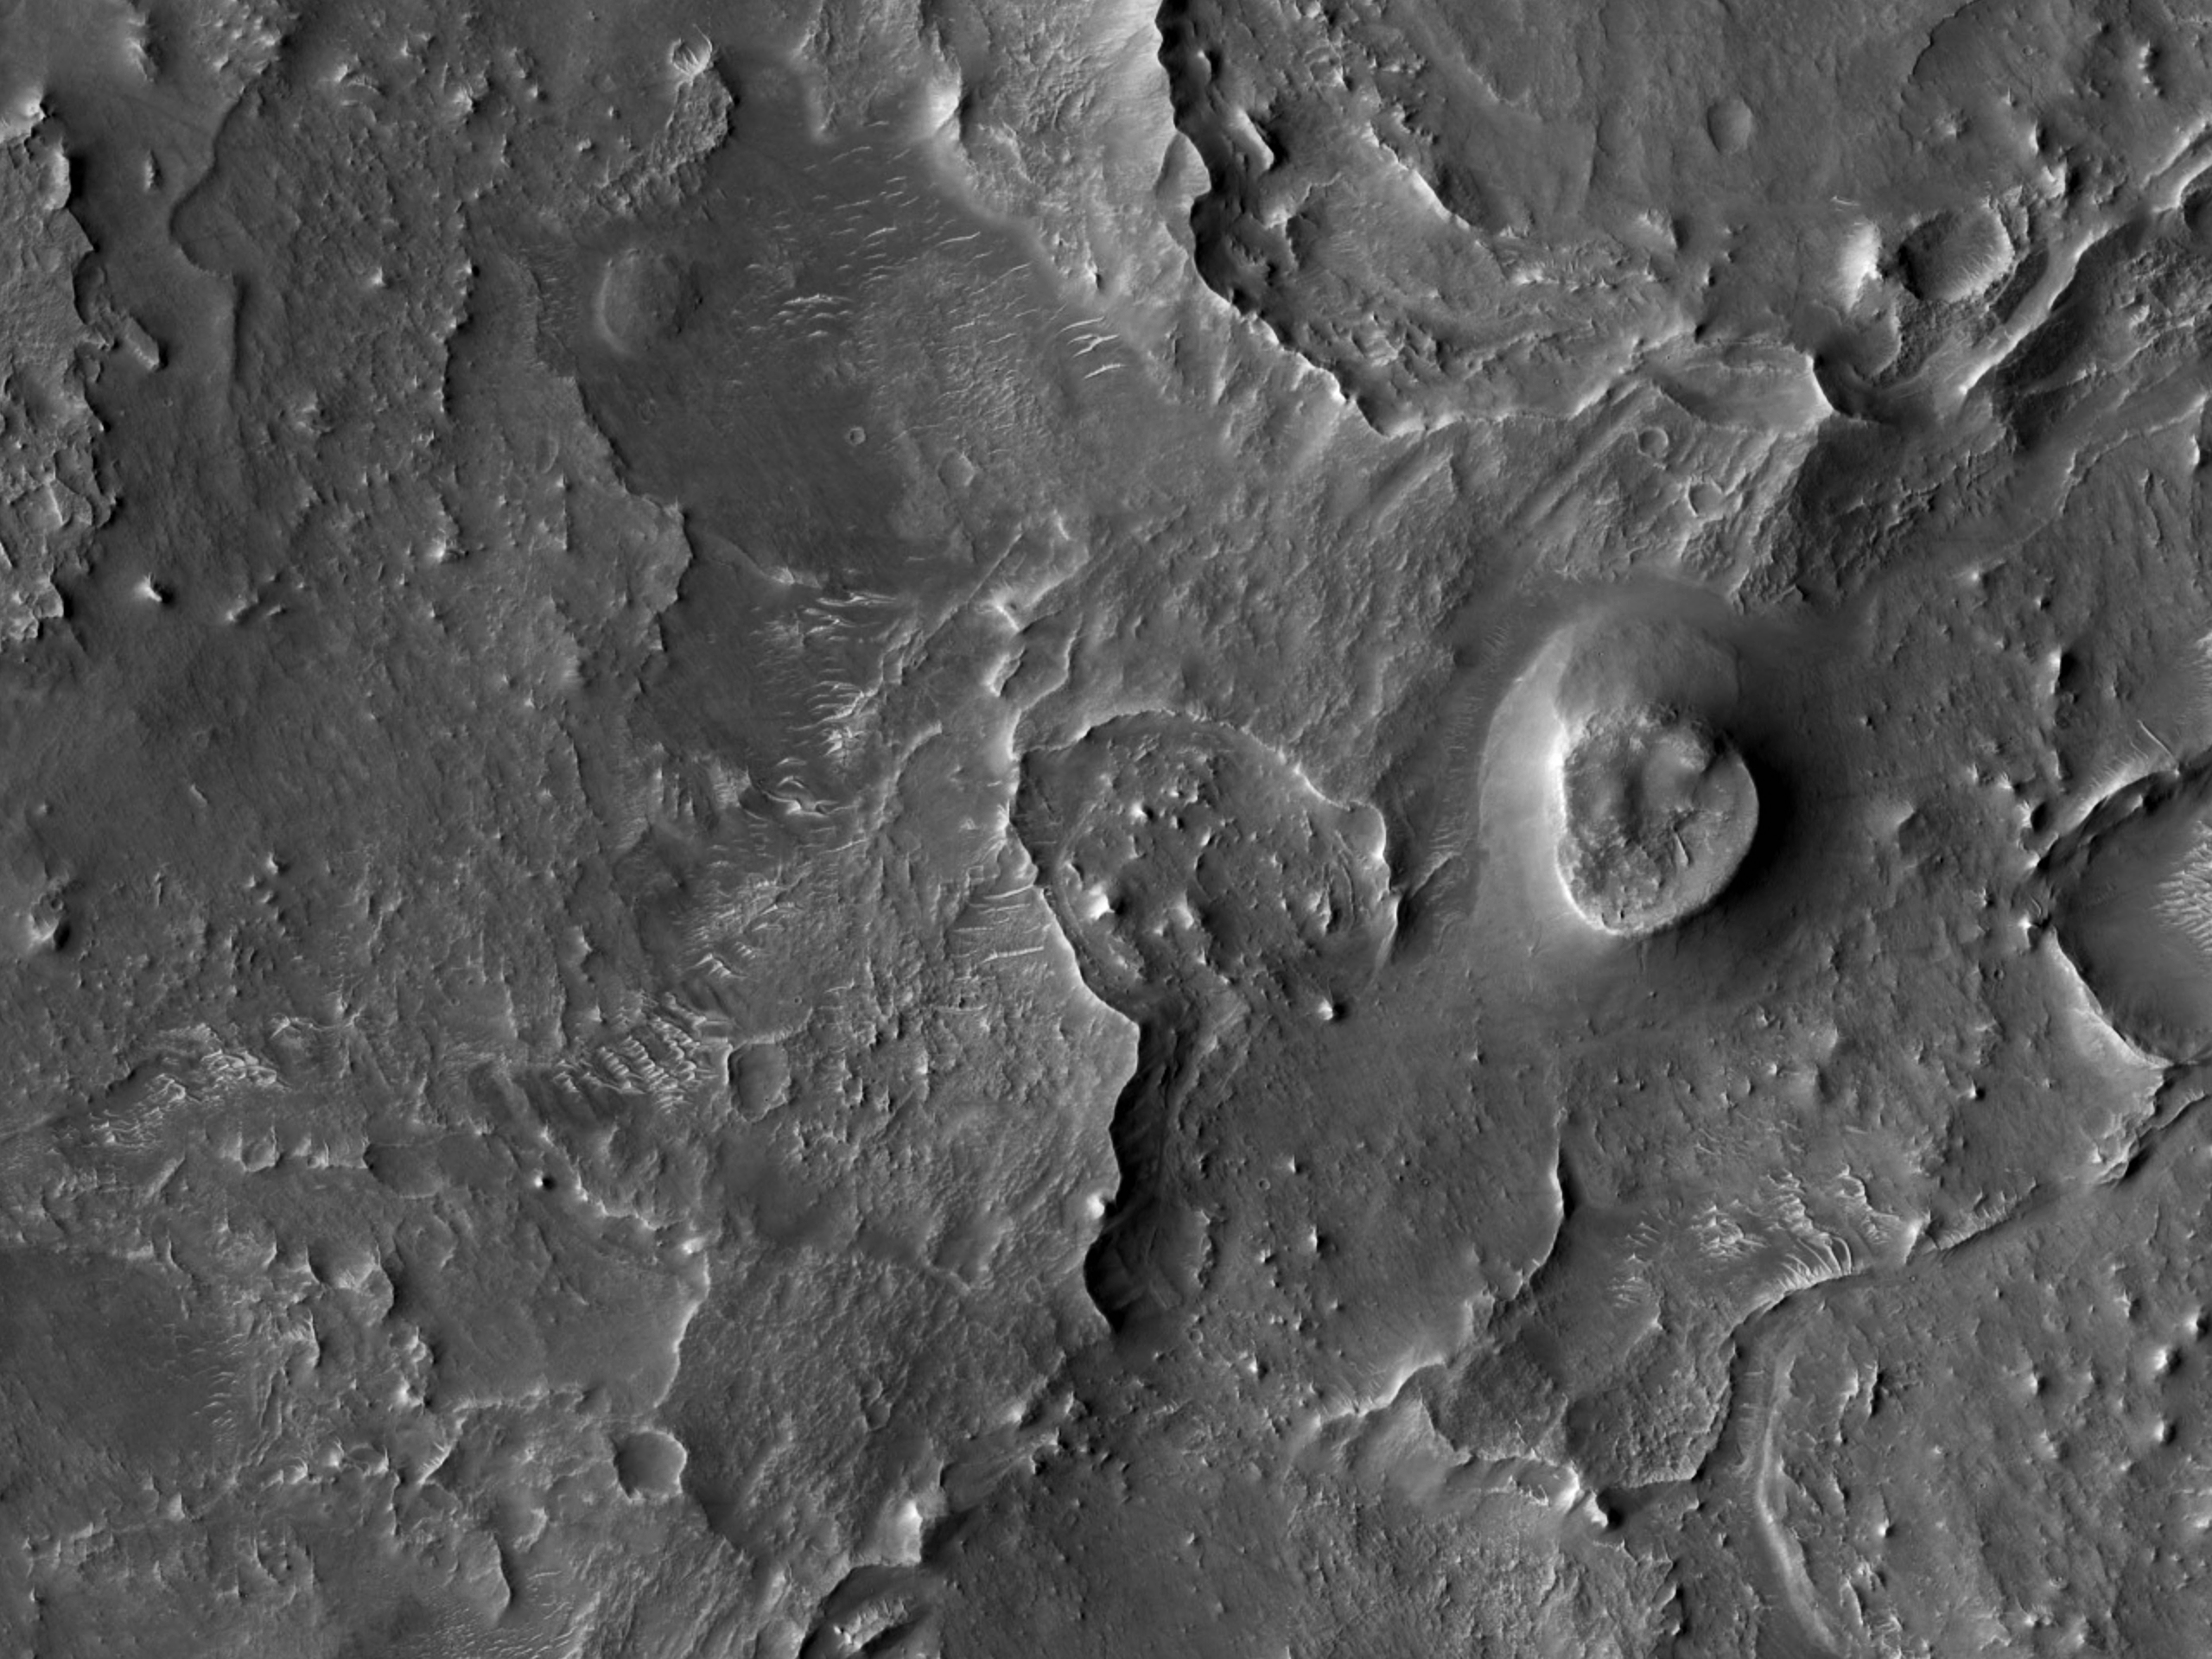 Ridges in Northeast Arabia Terra